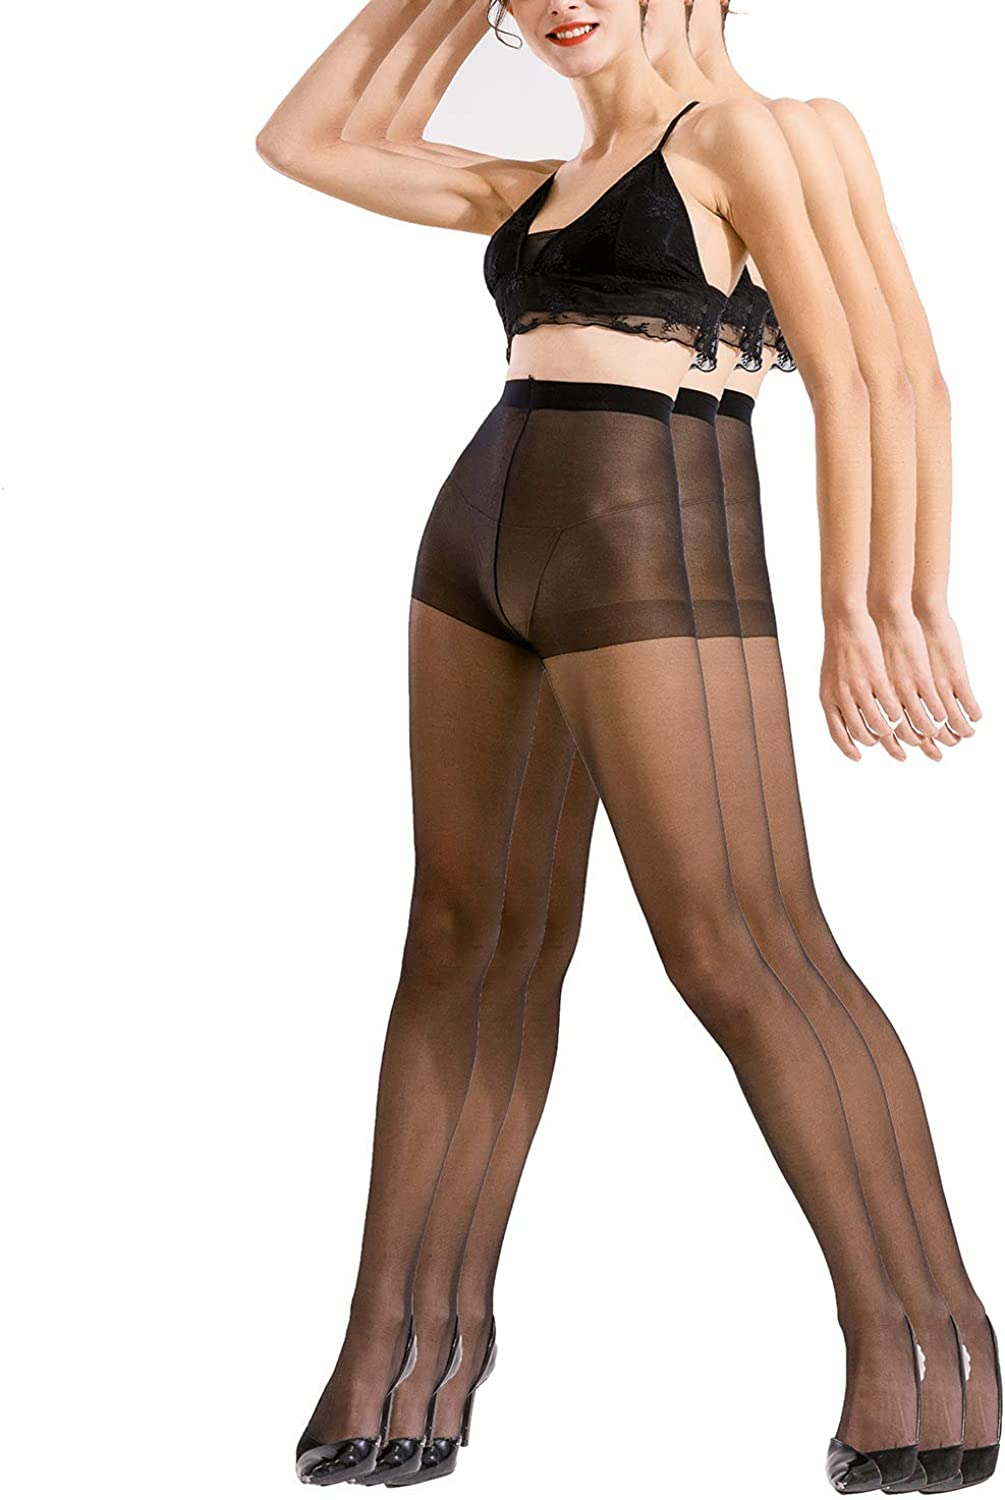 Sheer Pantyhose Silk Reflection - 3 Pack Microfiber Oxygen Tights, Ultra Soft Transparent Silky Stockings Stretchy